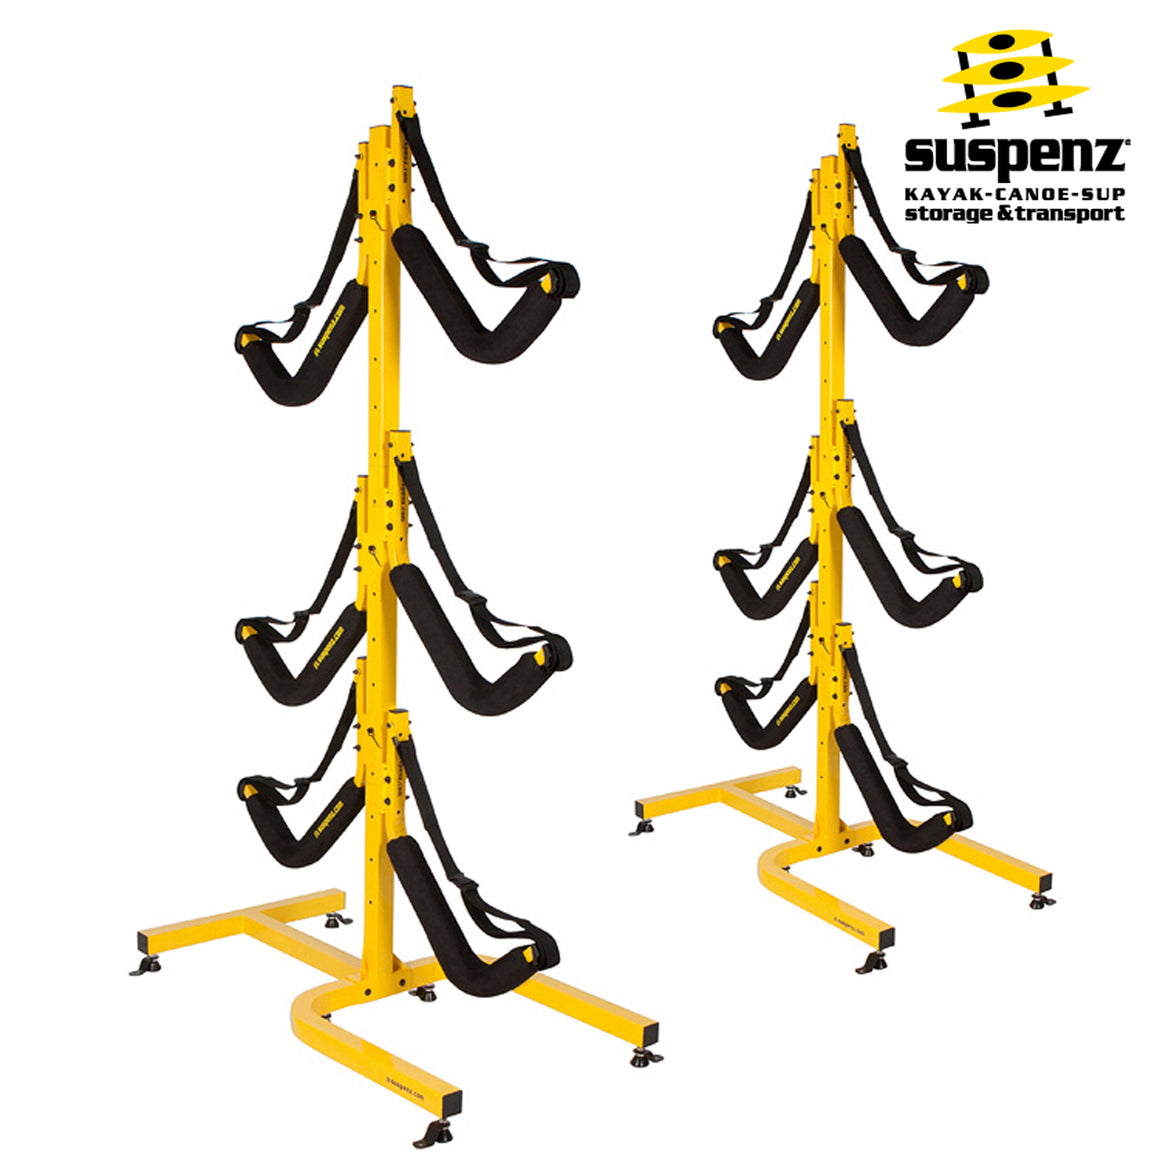 EZ 6-Boat Free-Standing Storage Rack - also available in BLACK!